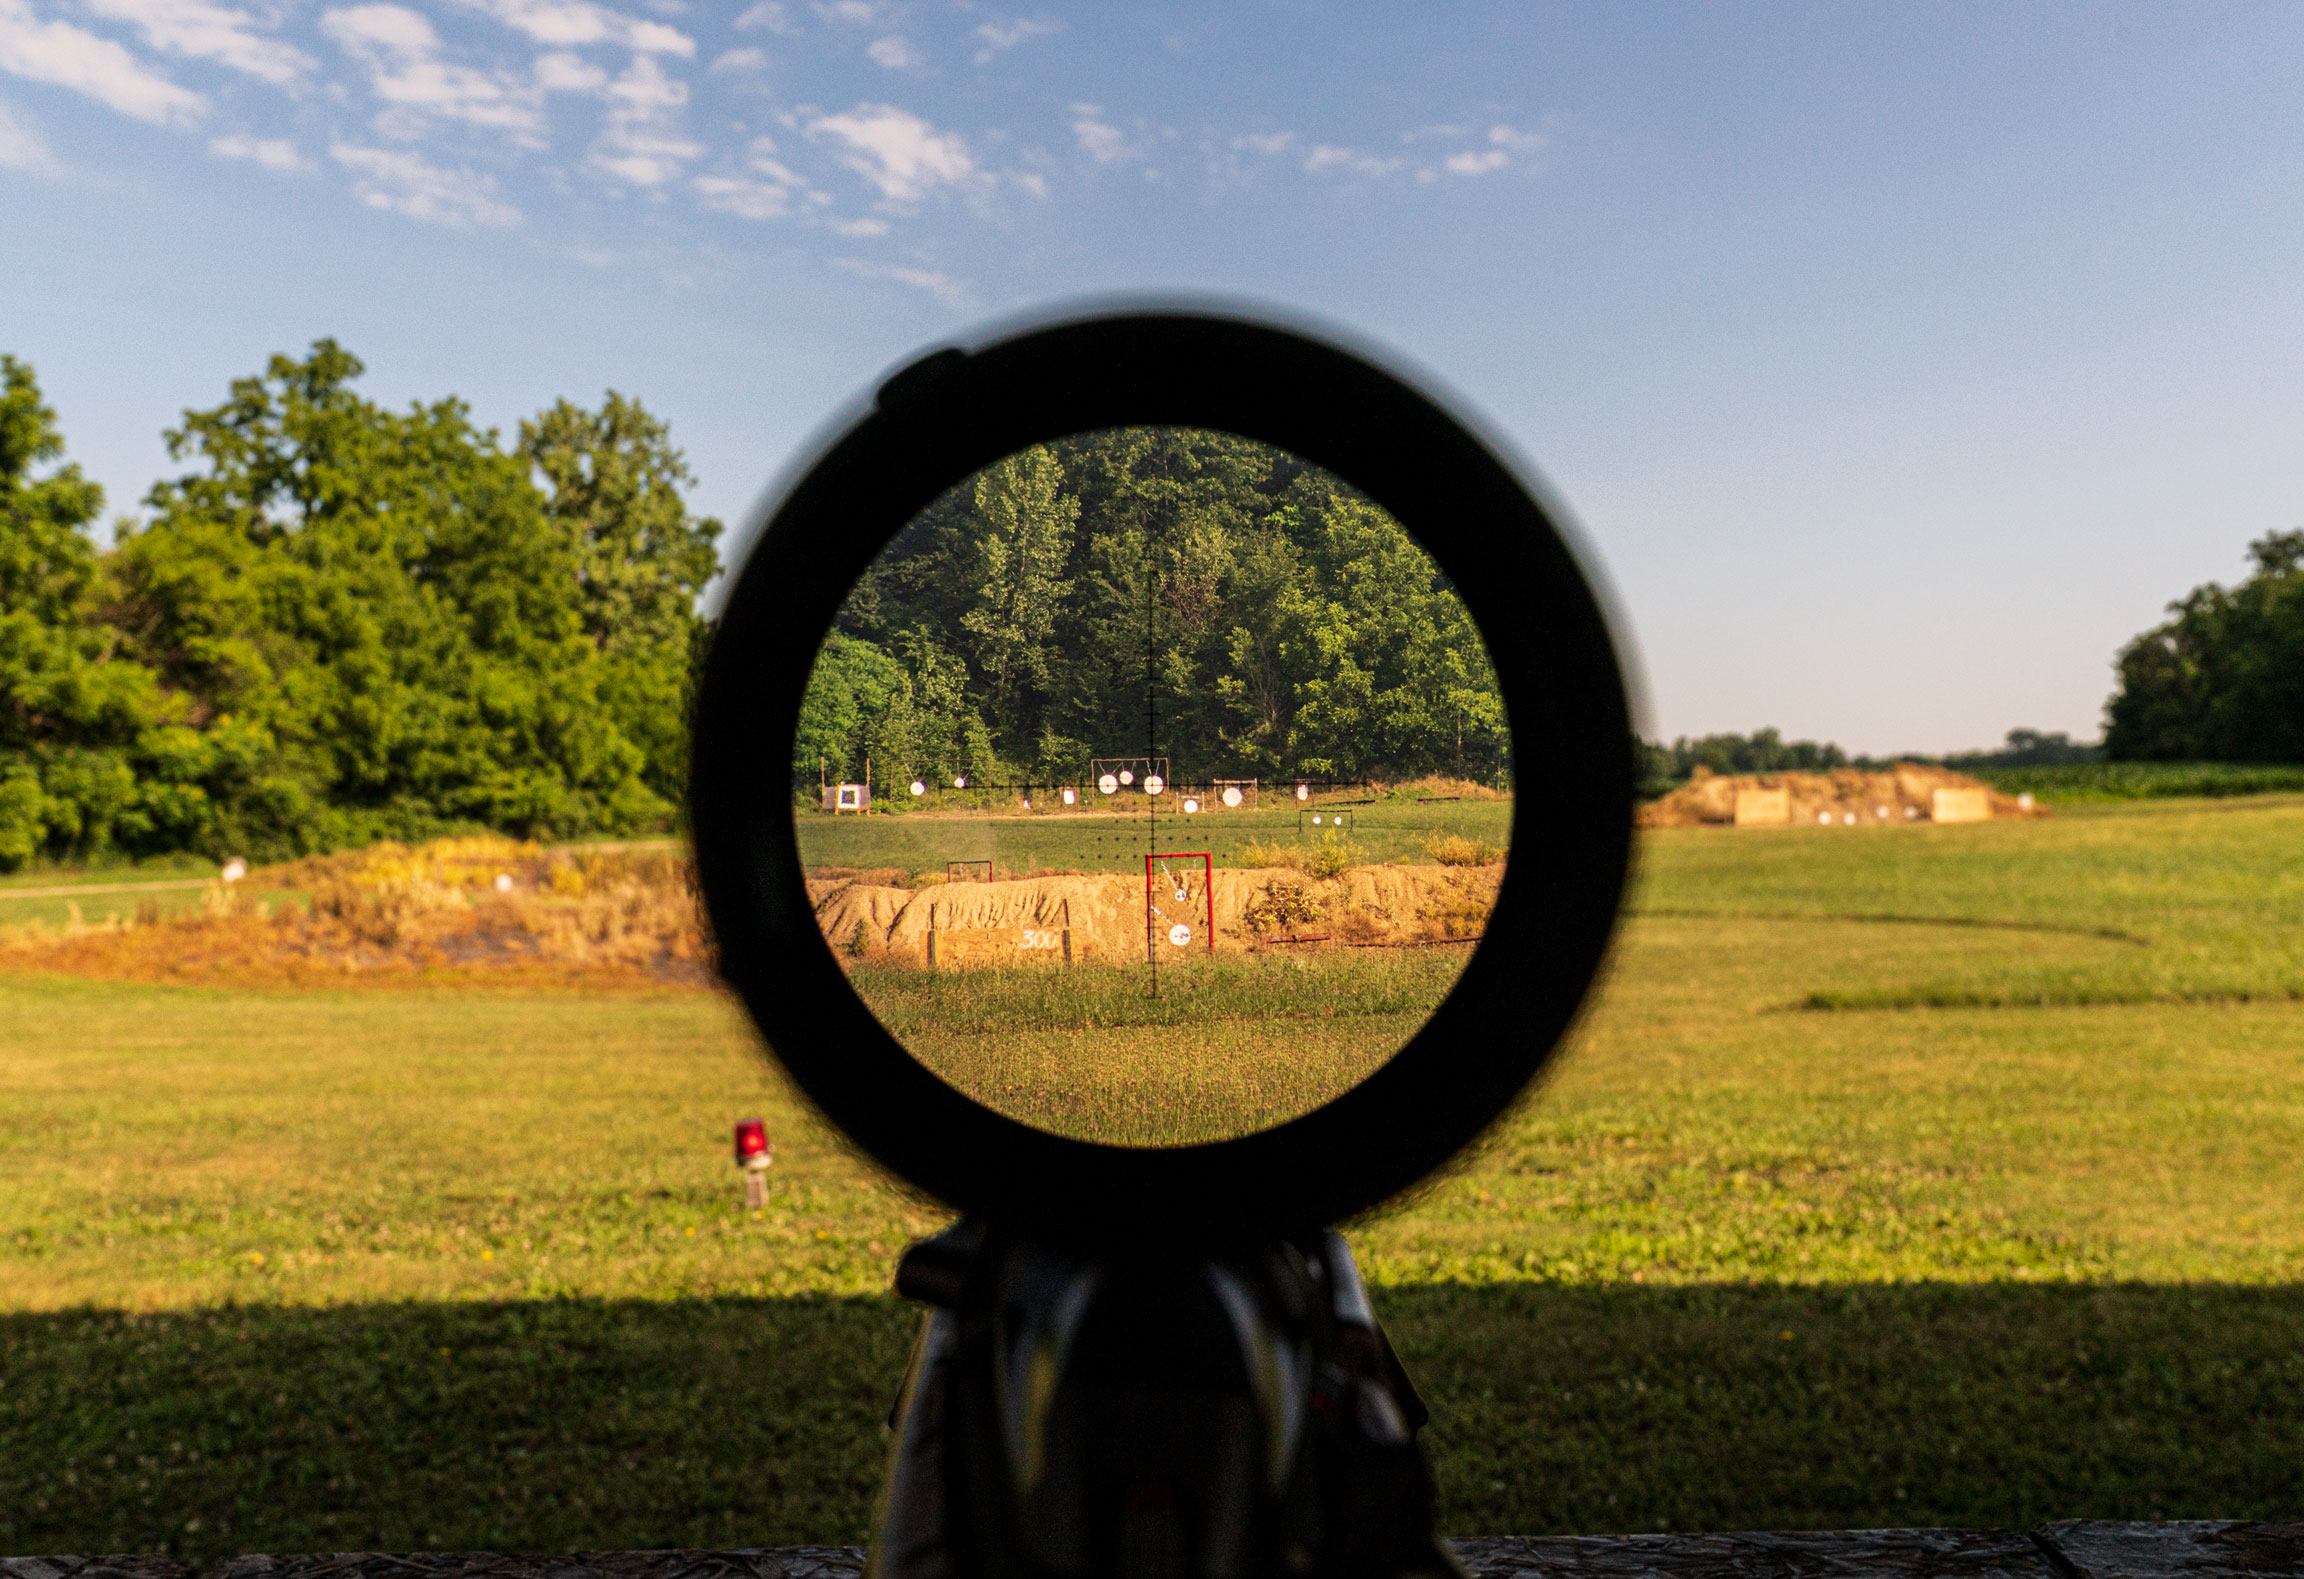 Using your riflescope and reticle to rangefind